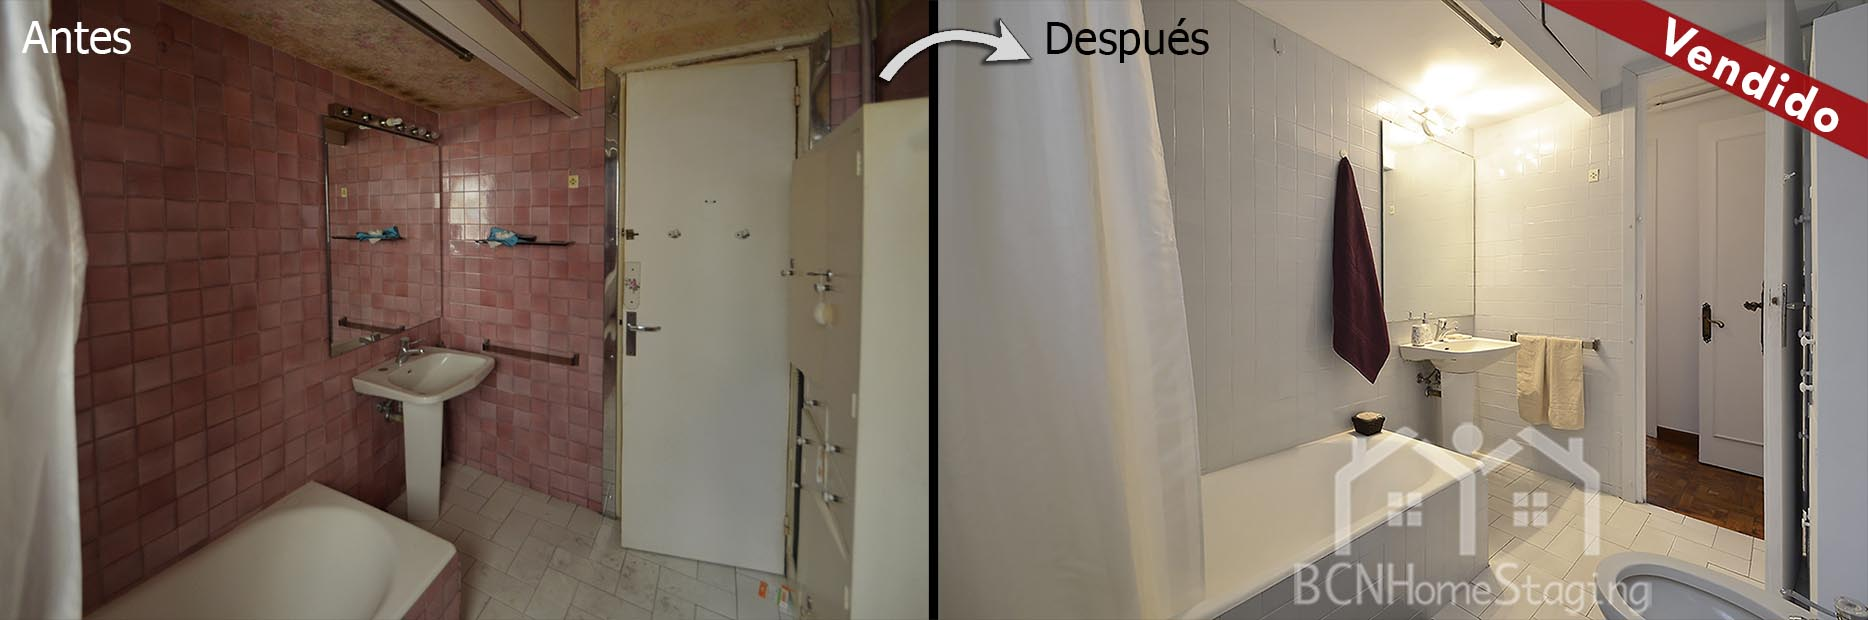 home-staging-barcelona-lavabo-antes-despues